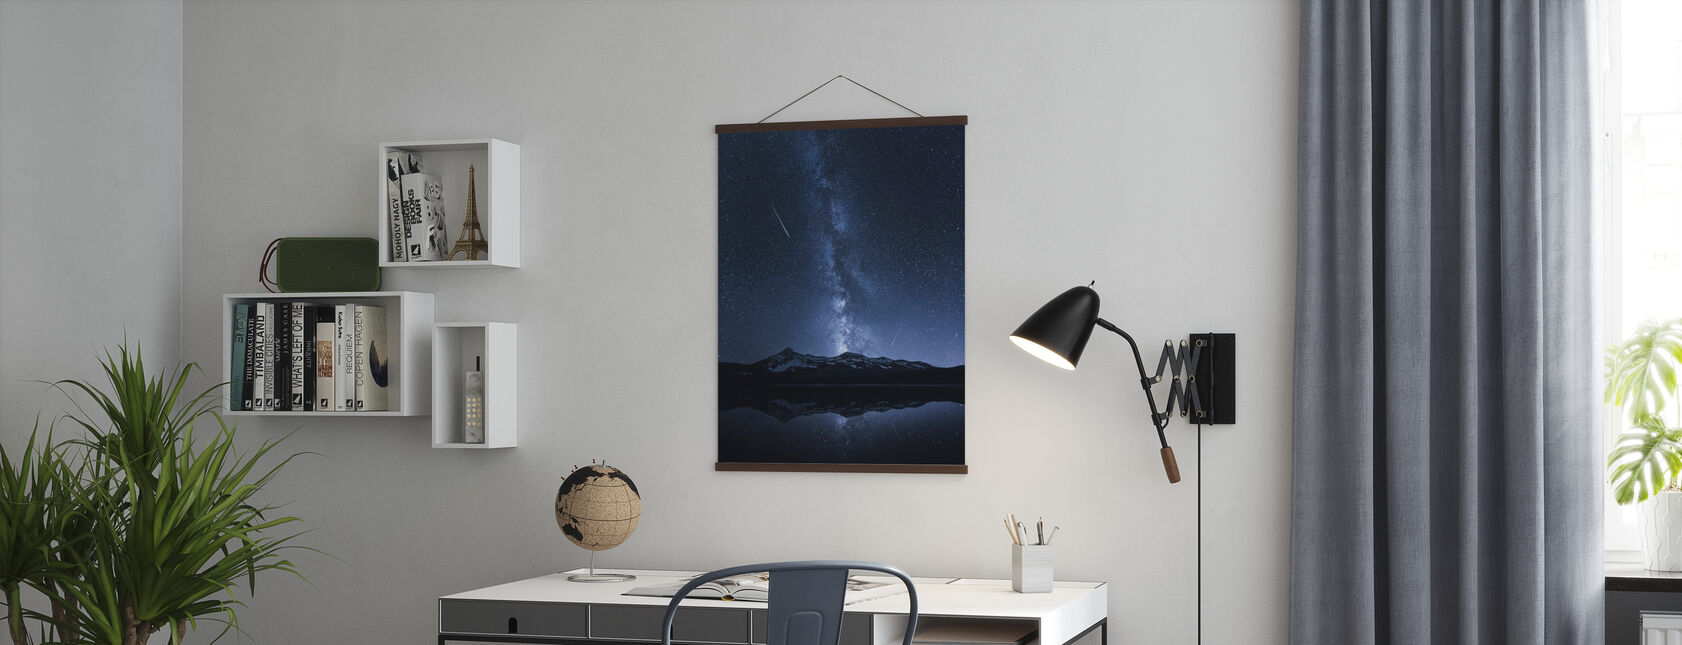 Galaxies Reflection - Poster - Office